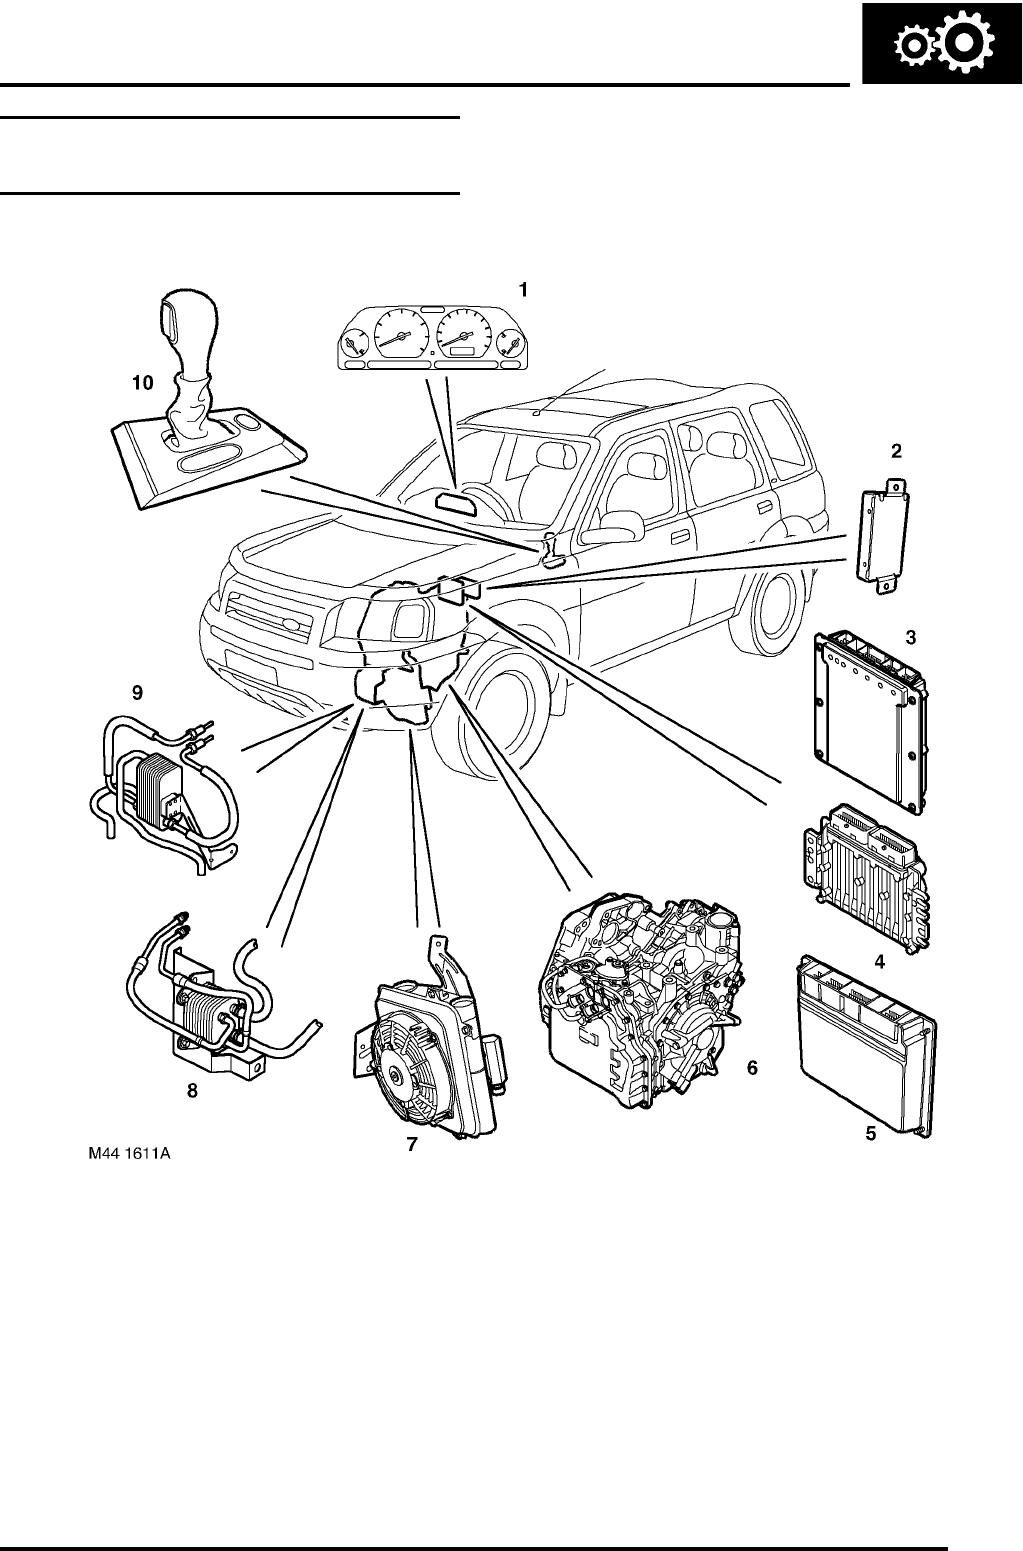 bg76 land rover freelander workshop manual pdf freelander wiring diagram pdf at mr168.co